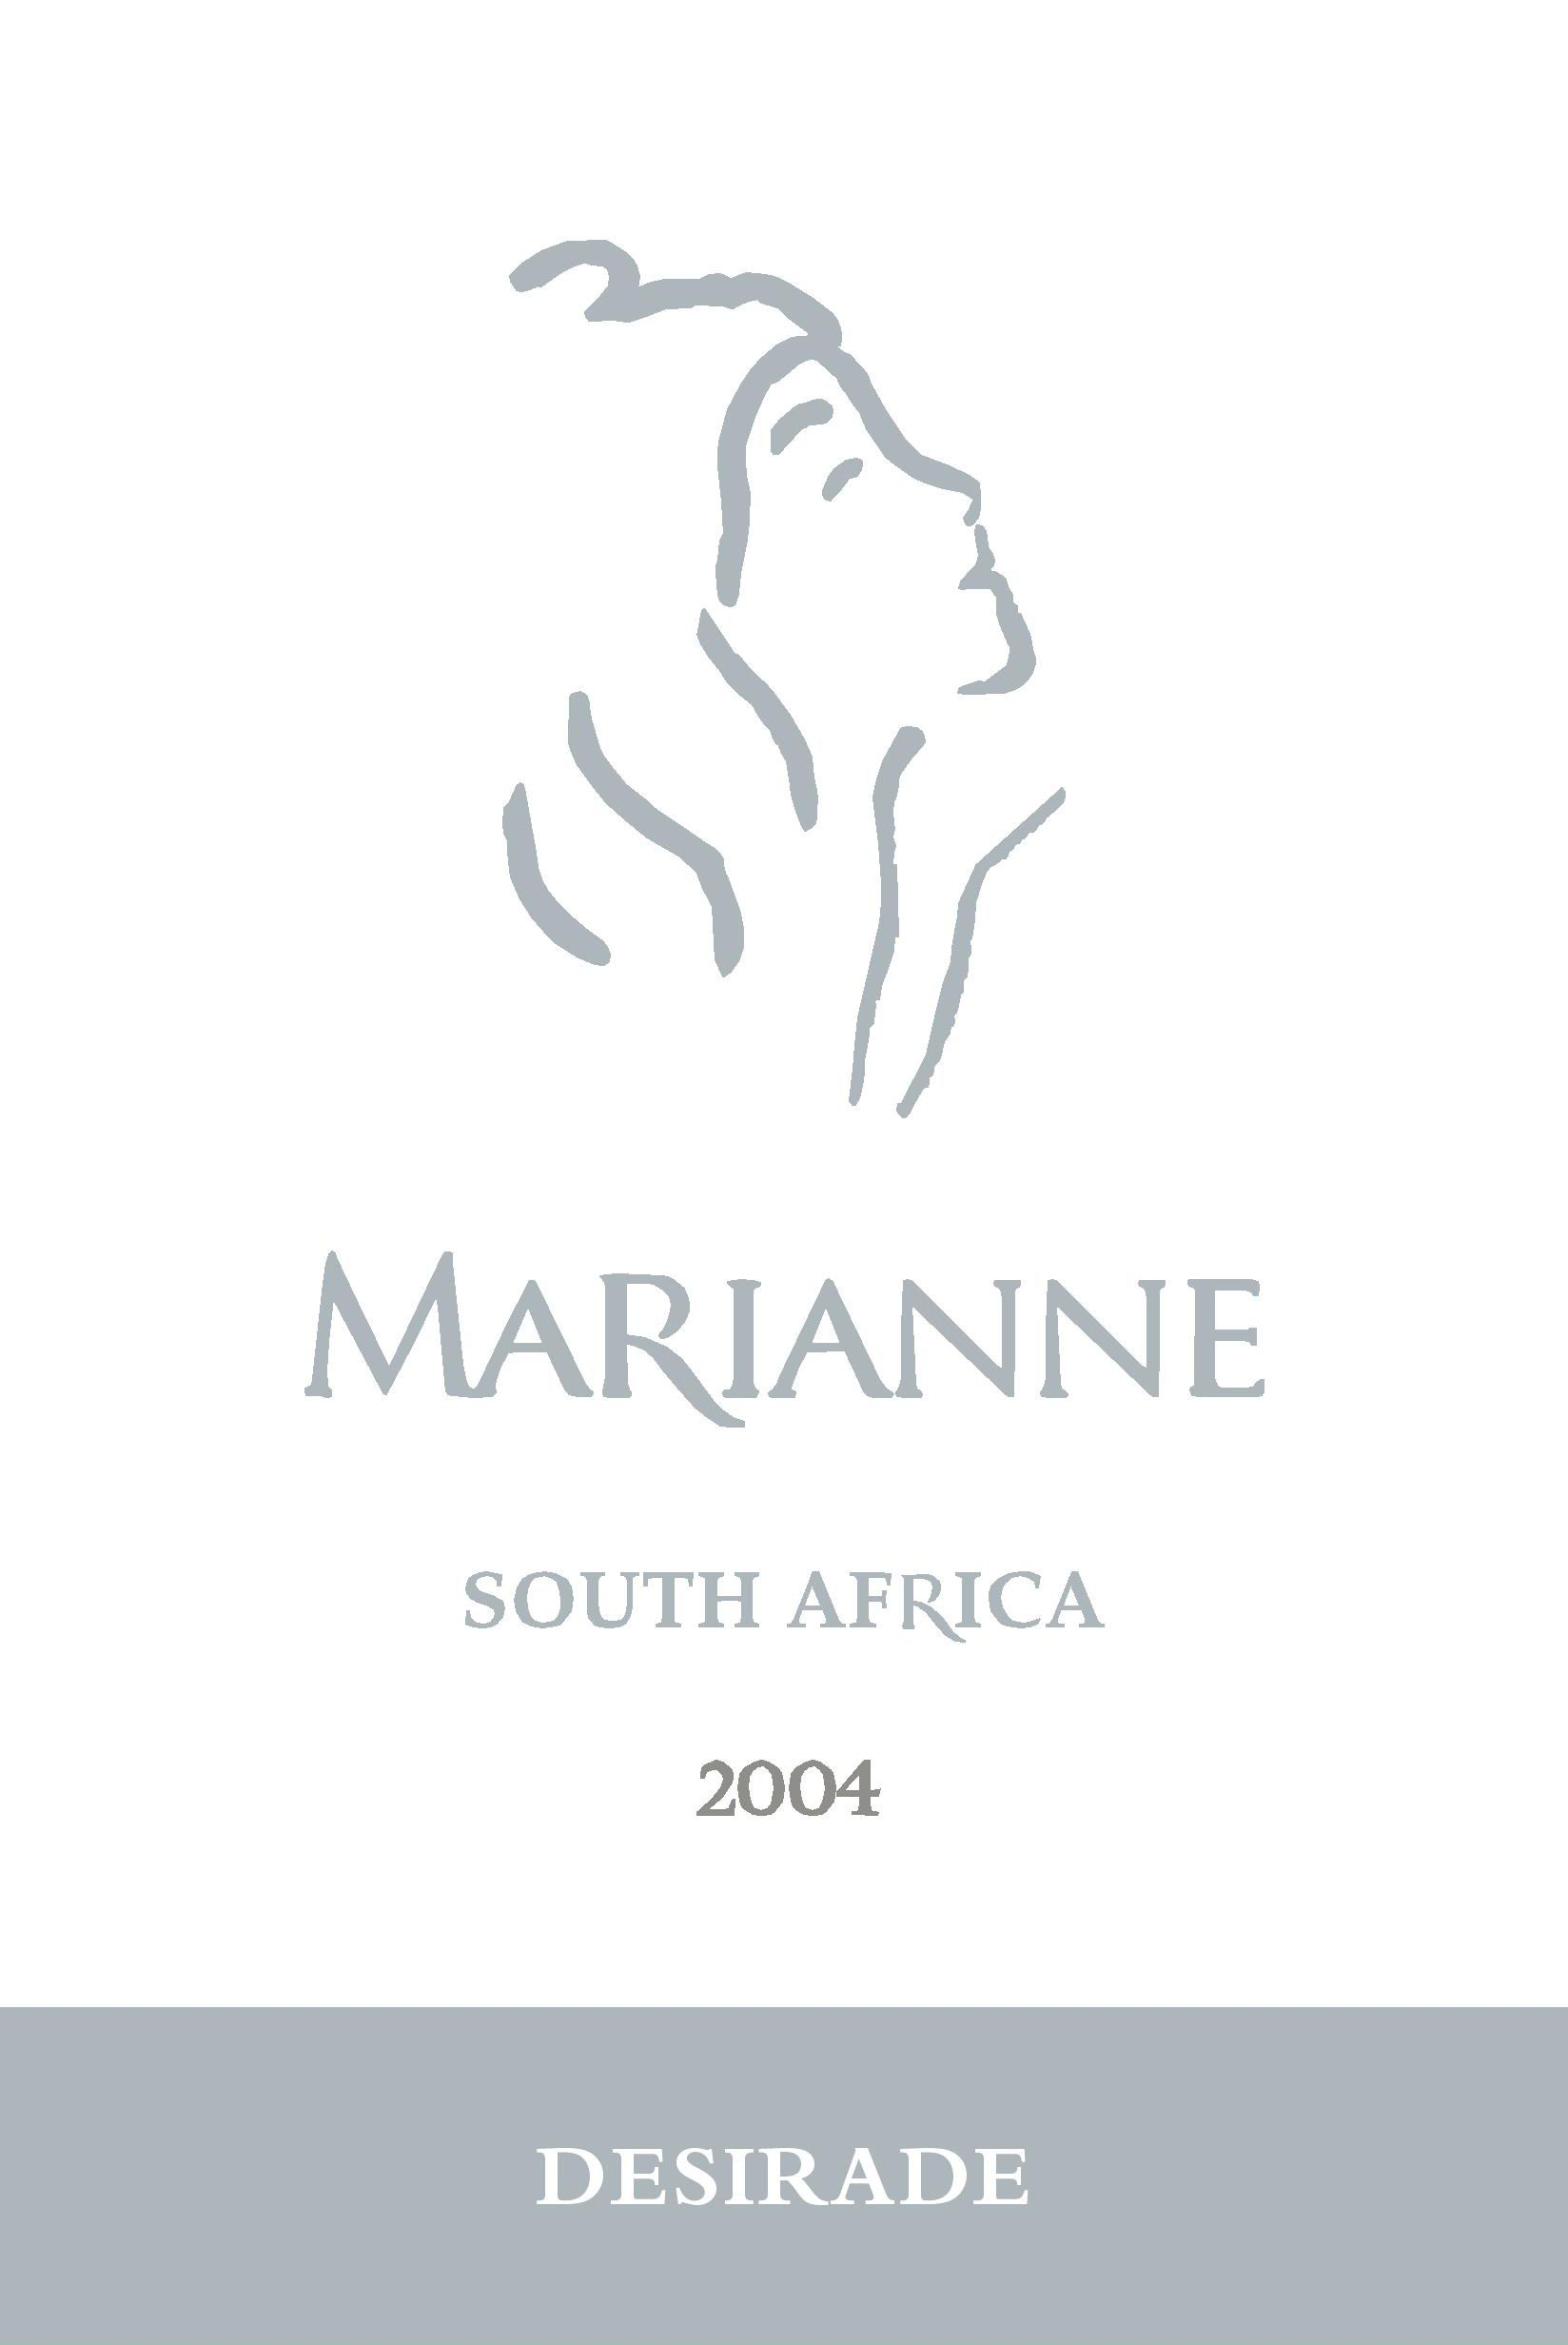 Wine Wine Label South Africa Marianne Desirade 2004 Bordeaux Blend Stellenbosch Our First Lady The Maiden Vintage At Wine Label Wine Labels